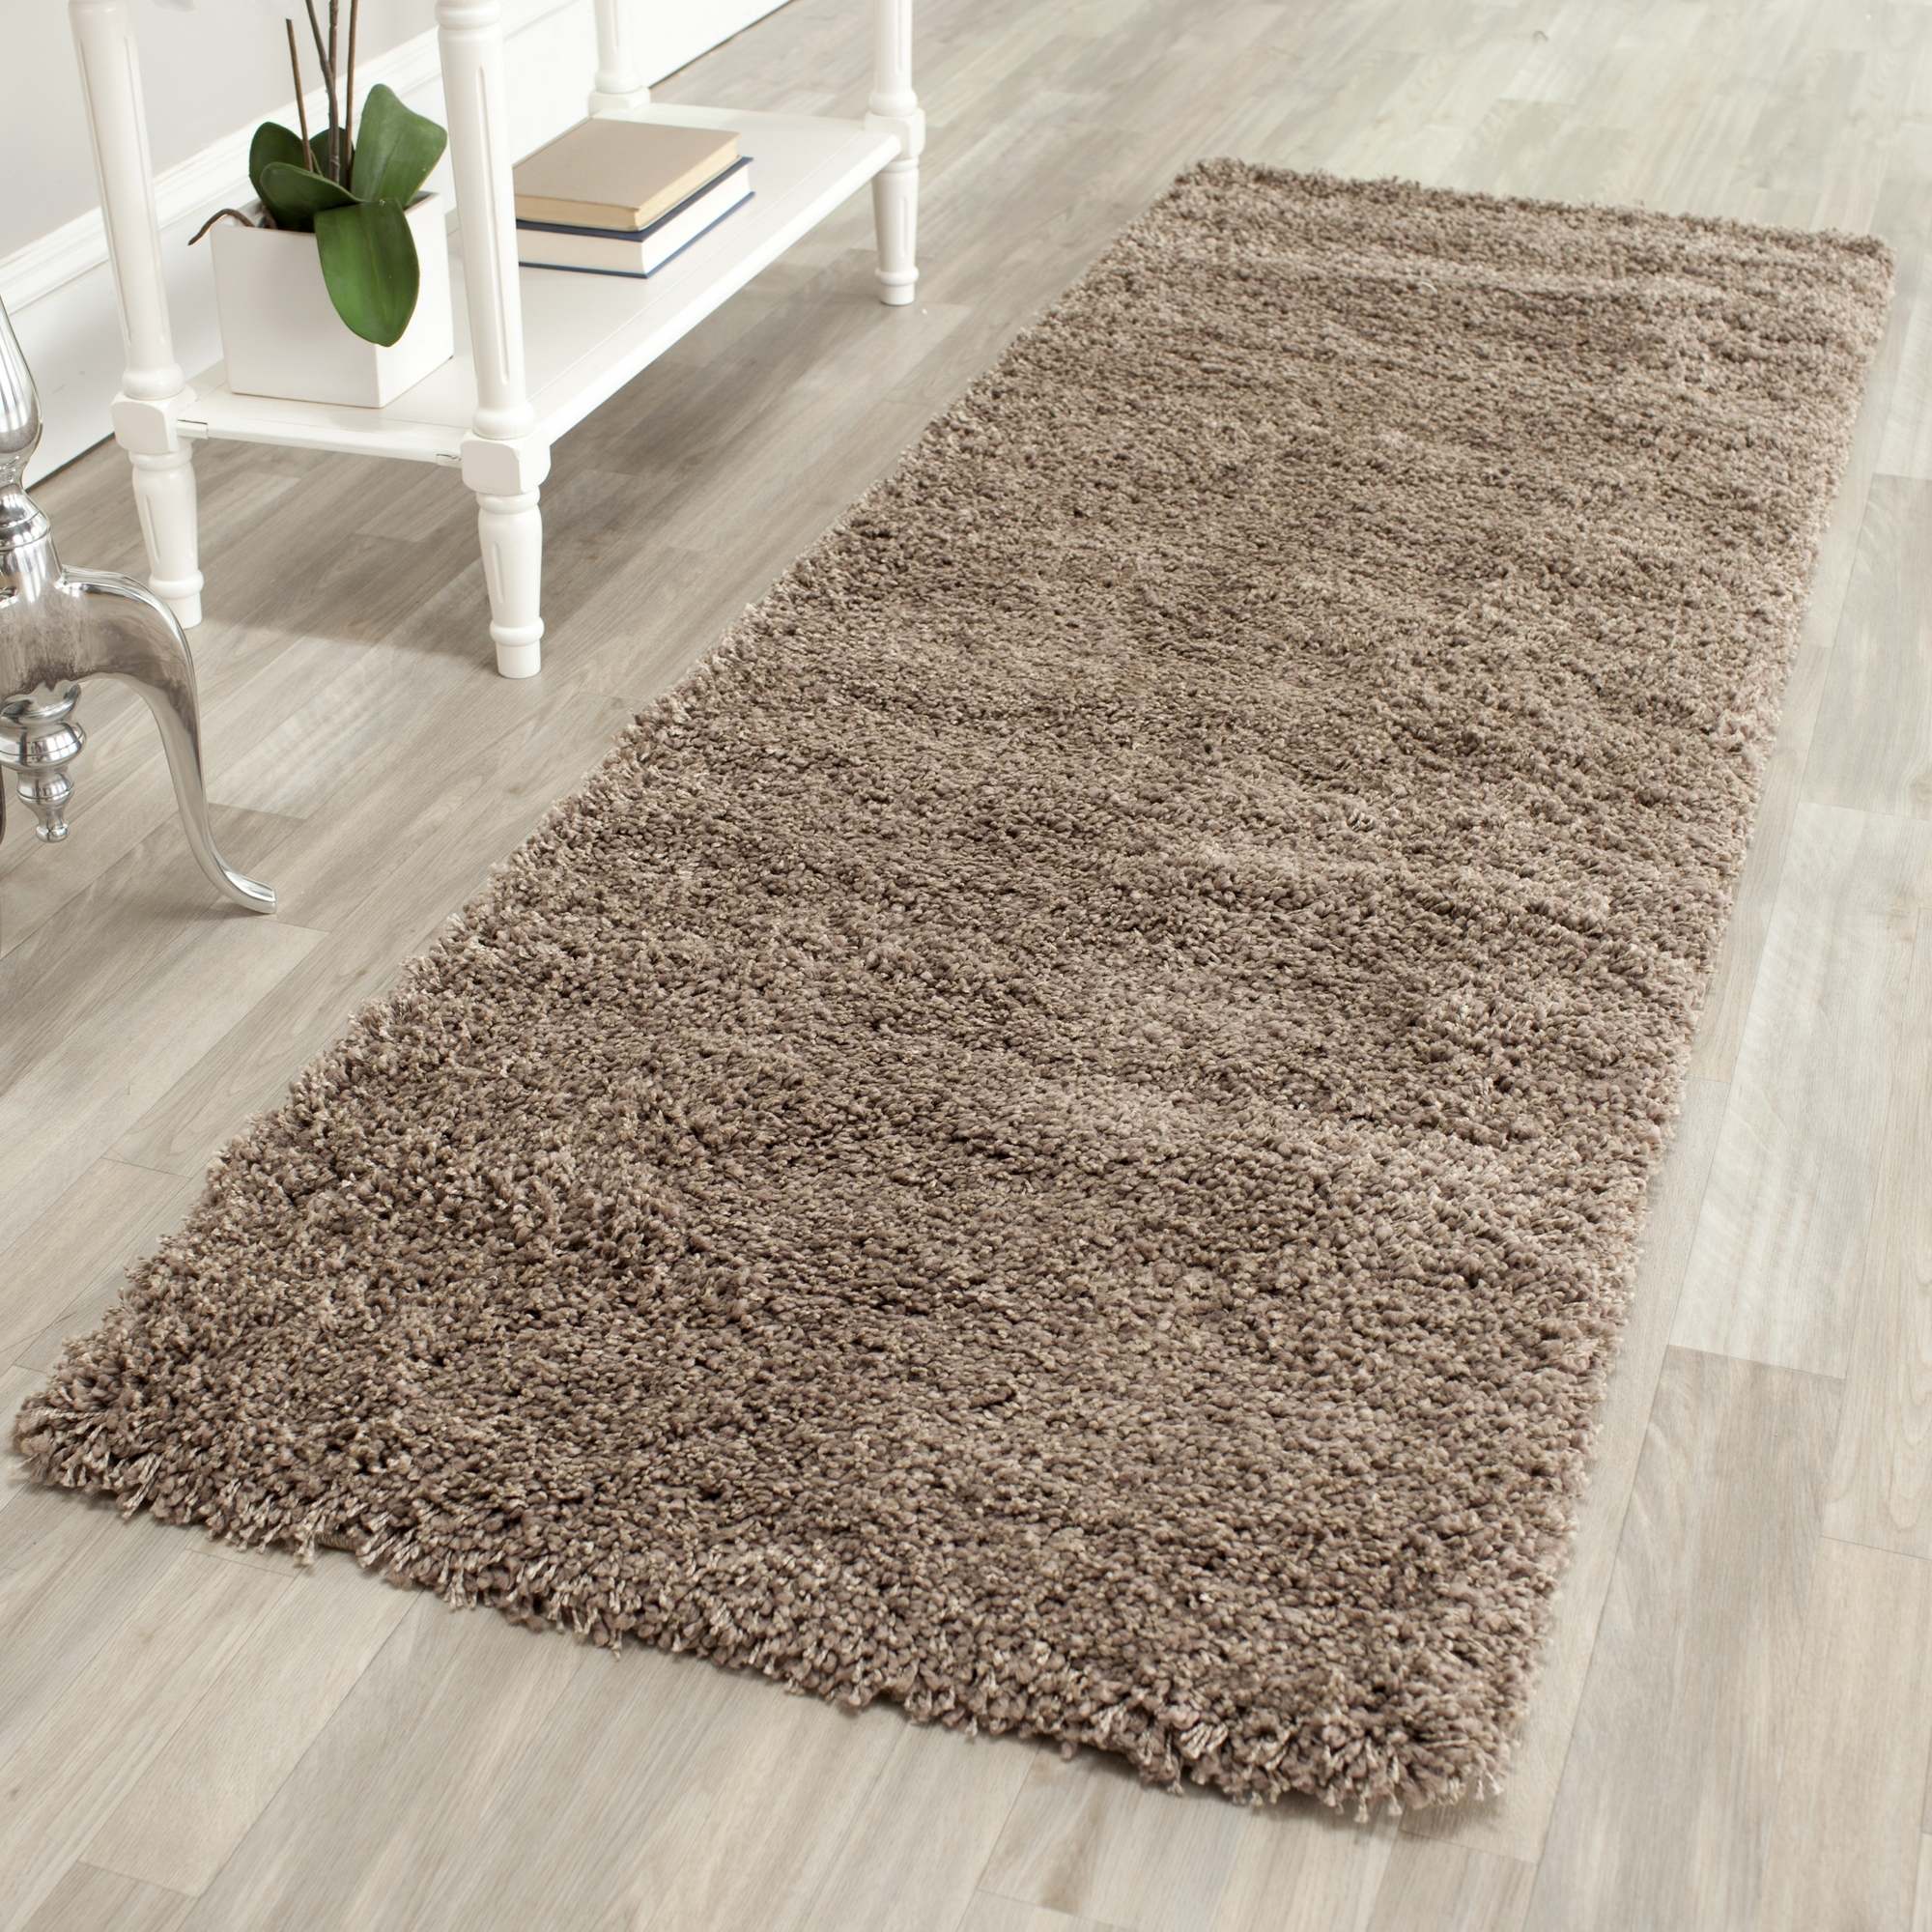 Beautiful Safavieh-Power-Loomed-TAUPE-Plush-Shag-Area-Rugs- plush area rugs